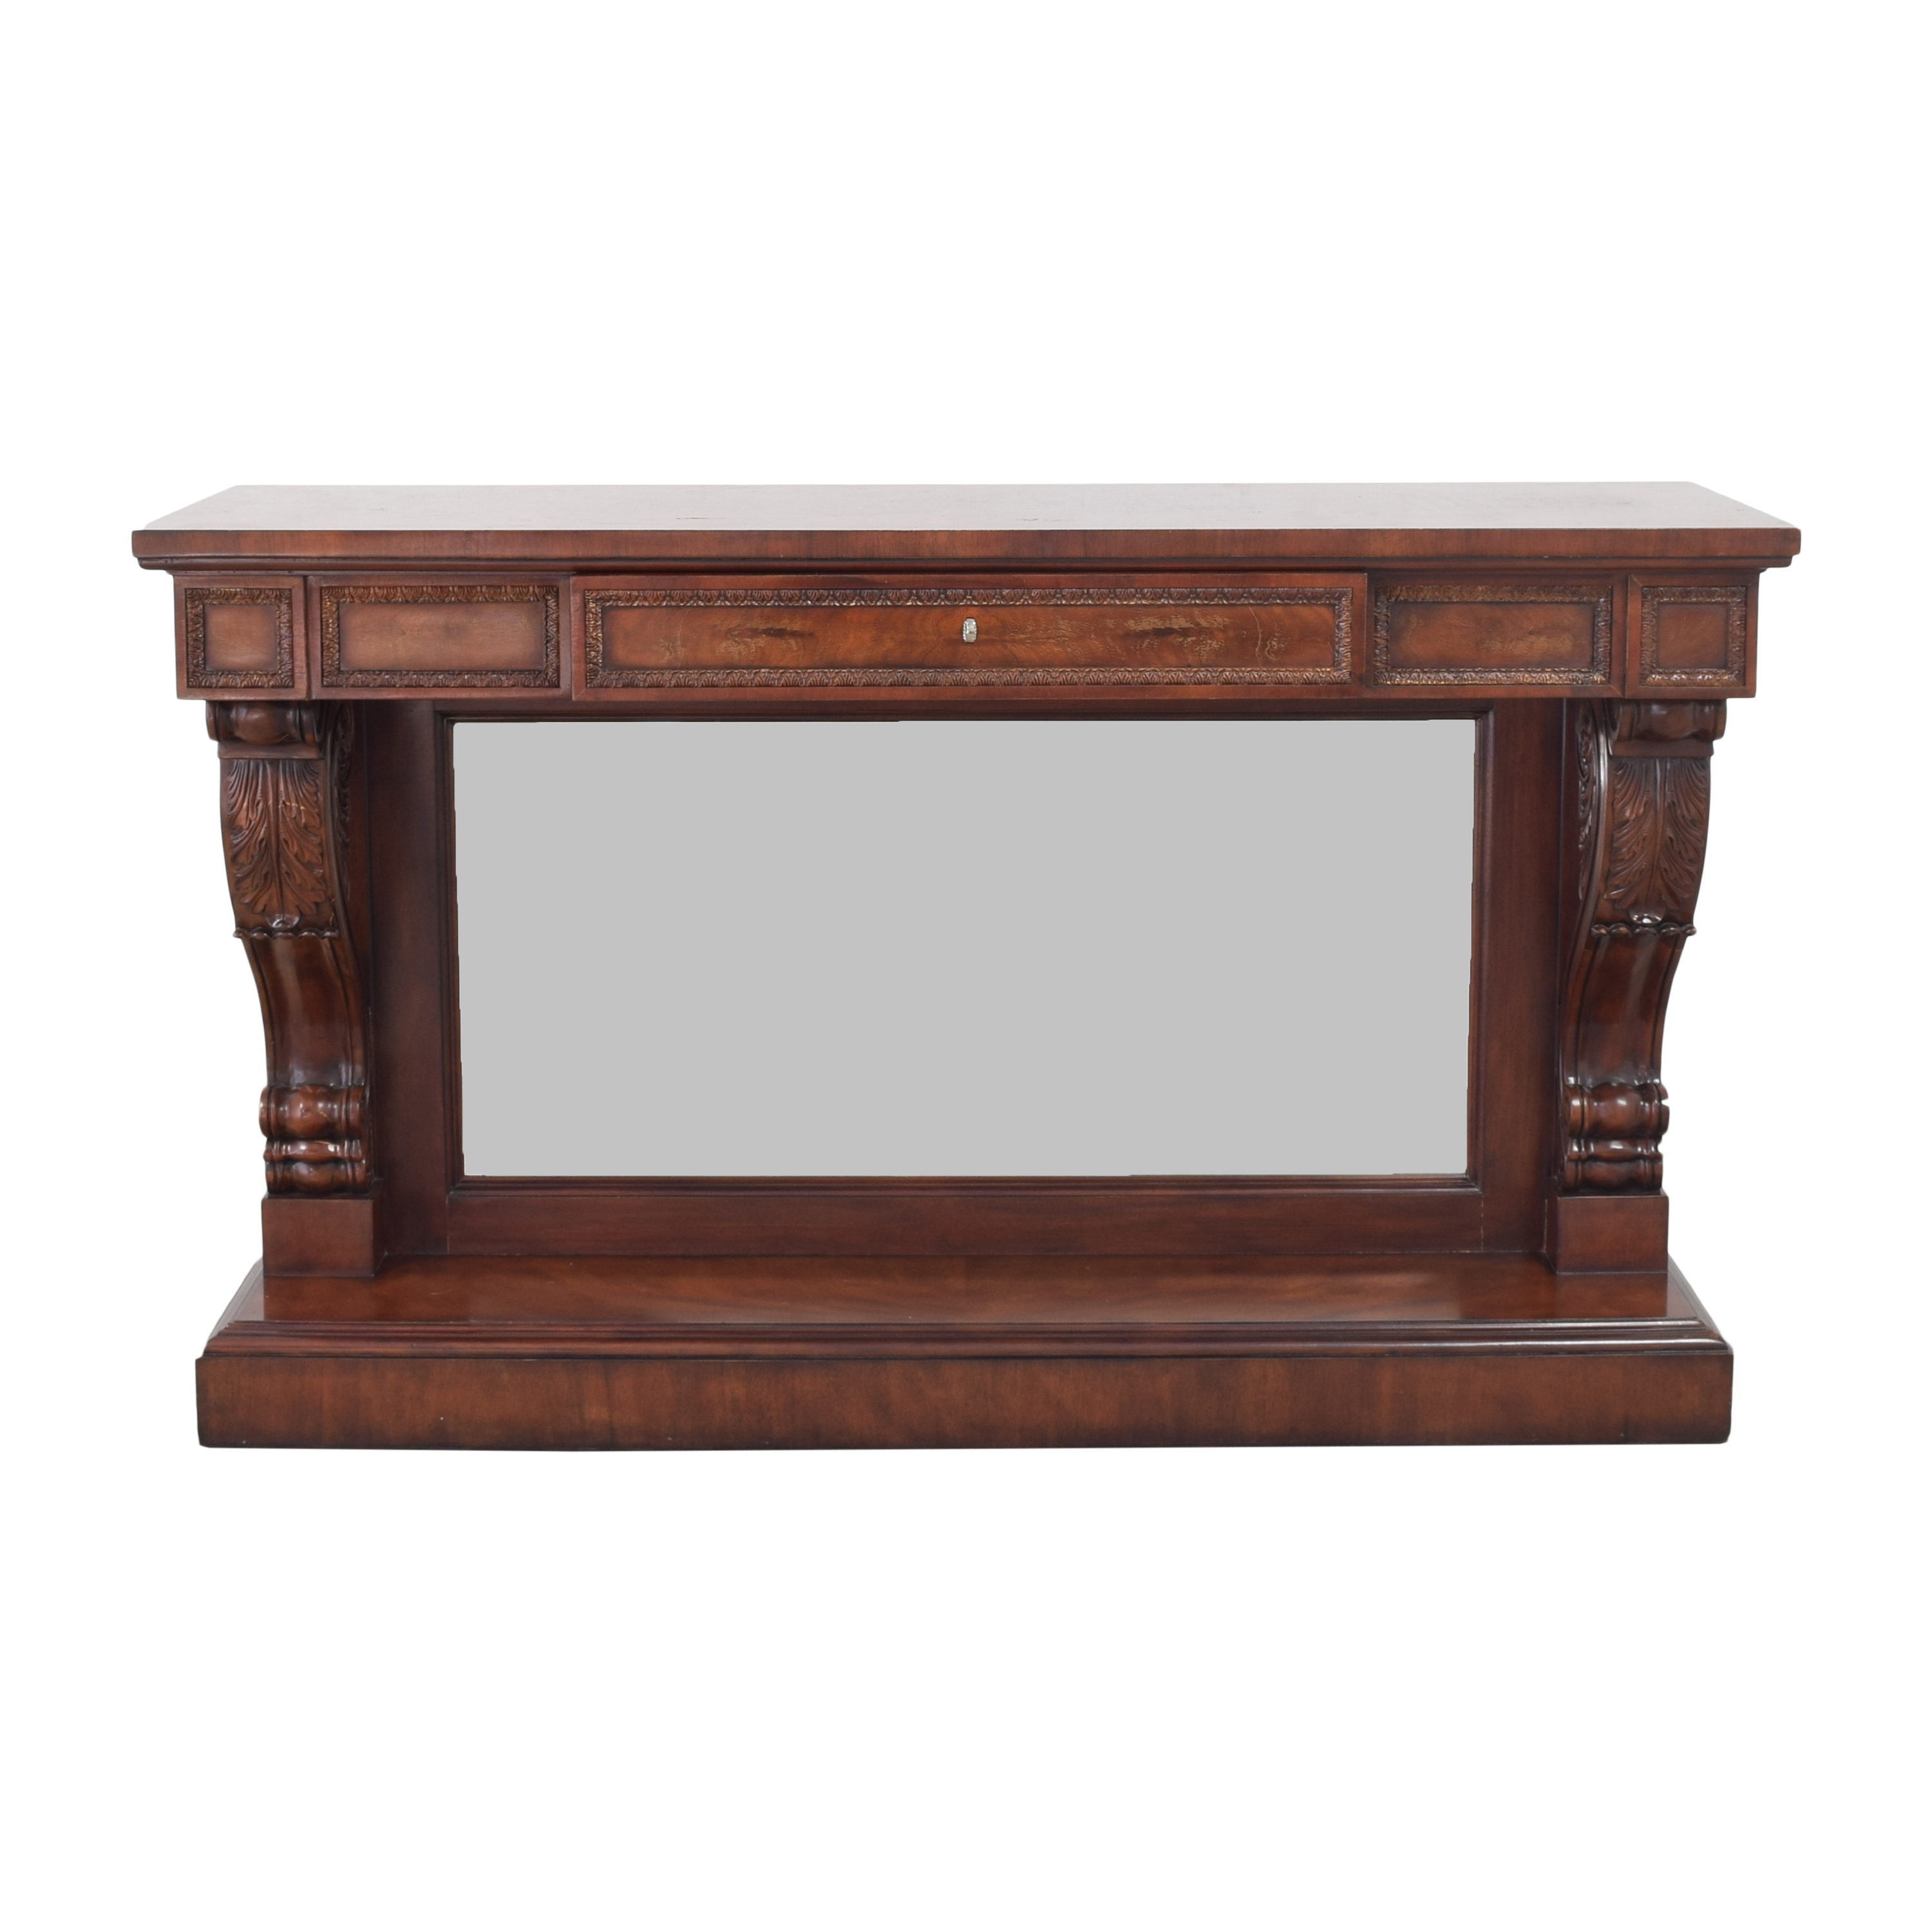 Ralph Lauren Home Ralph Lauren Home Mayfair Mirrored Console discount